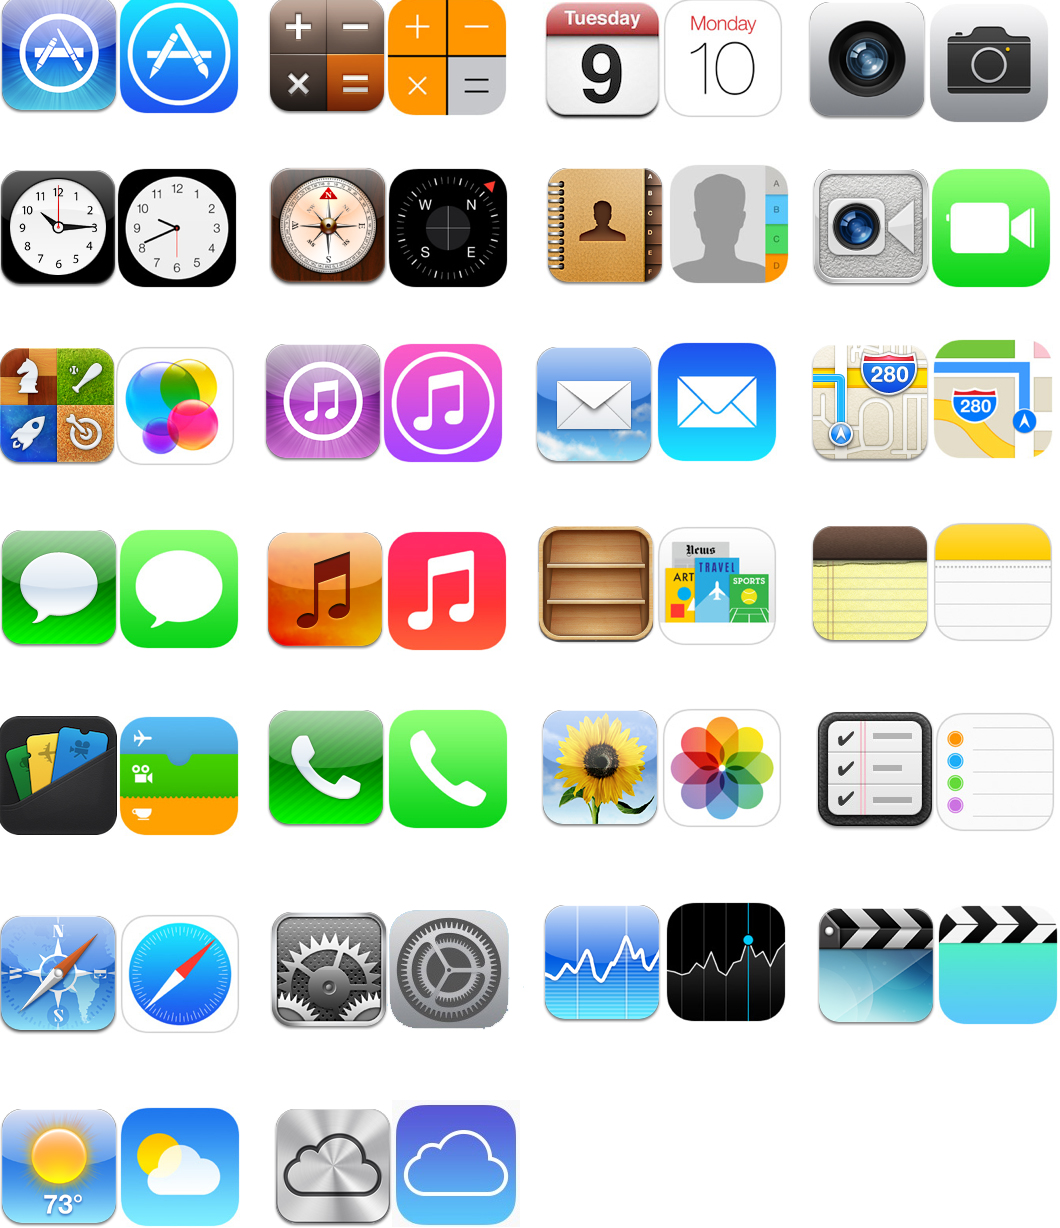 15 IOS 7 App Icons Images